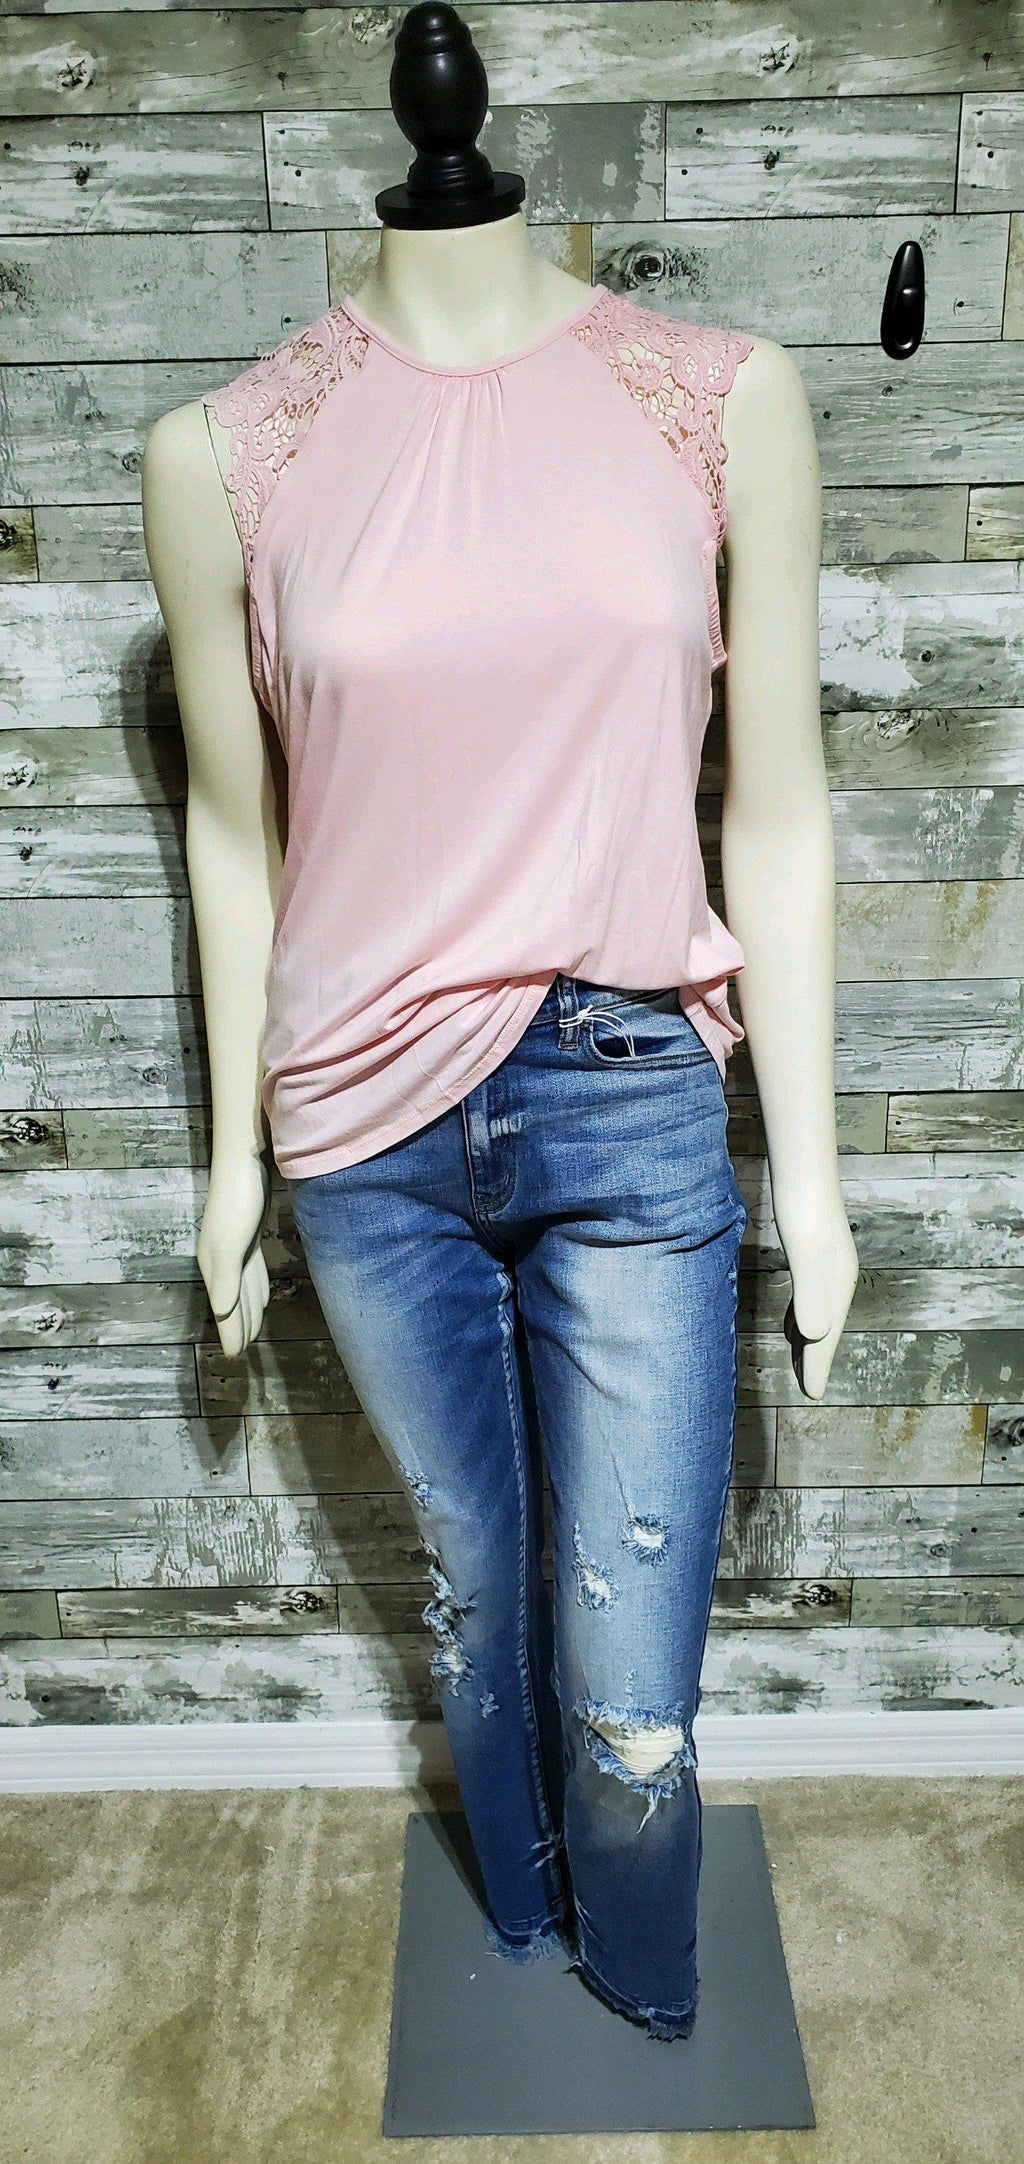 Pink Tank with Lace Shoulders-Tank-Litchfield Lane Boutique-Litchfield Lane Boutique